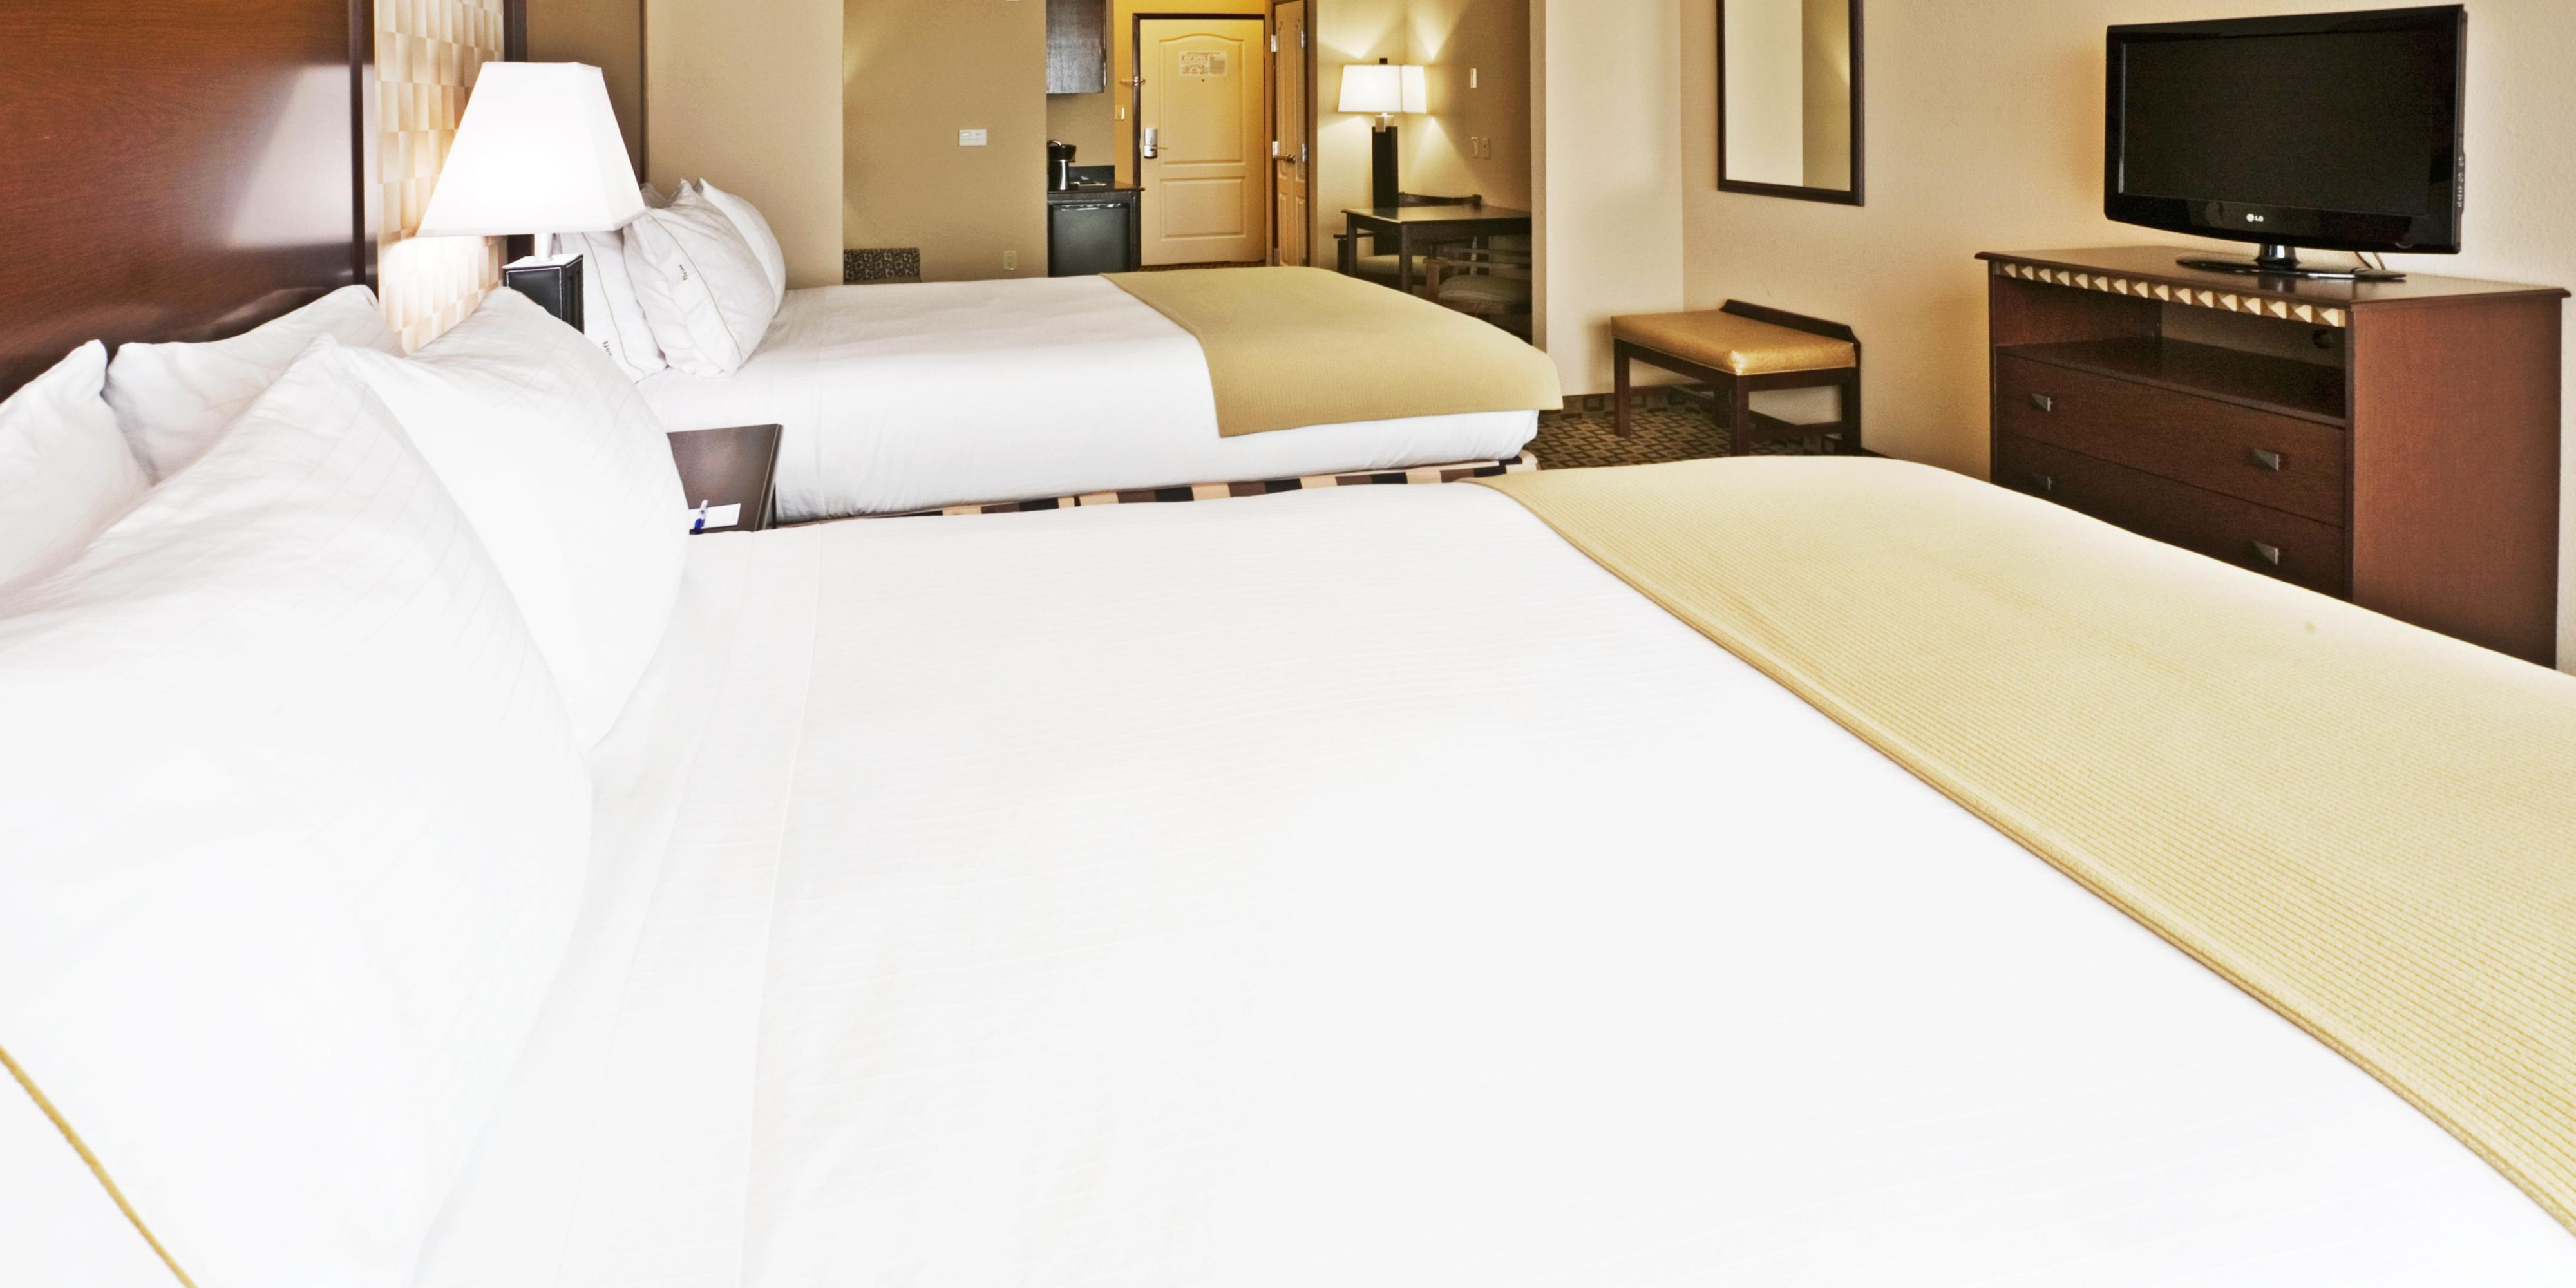 Holiday Inn Express & Suites Royse City Rockwall Hotel by IHG